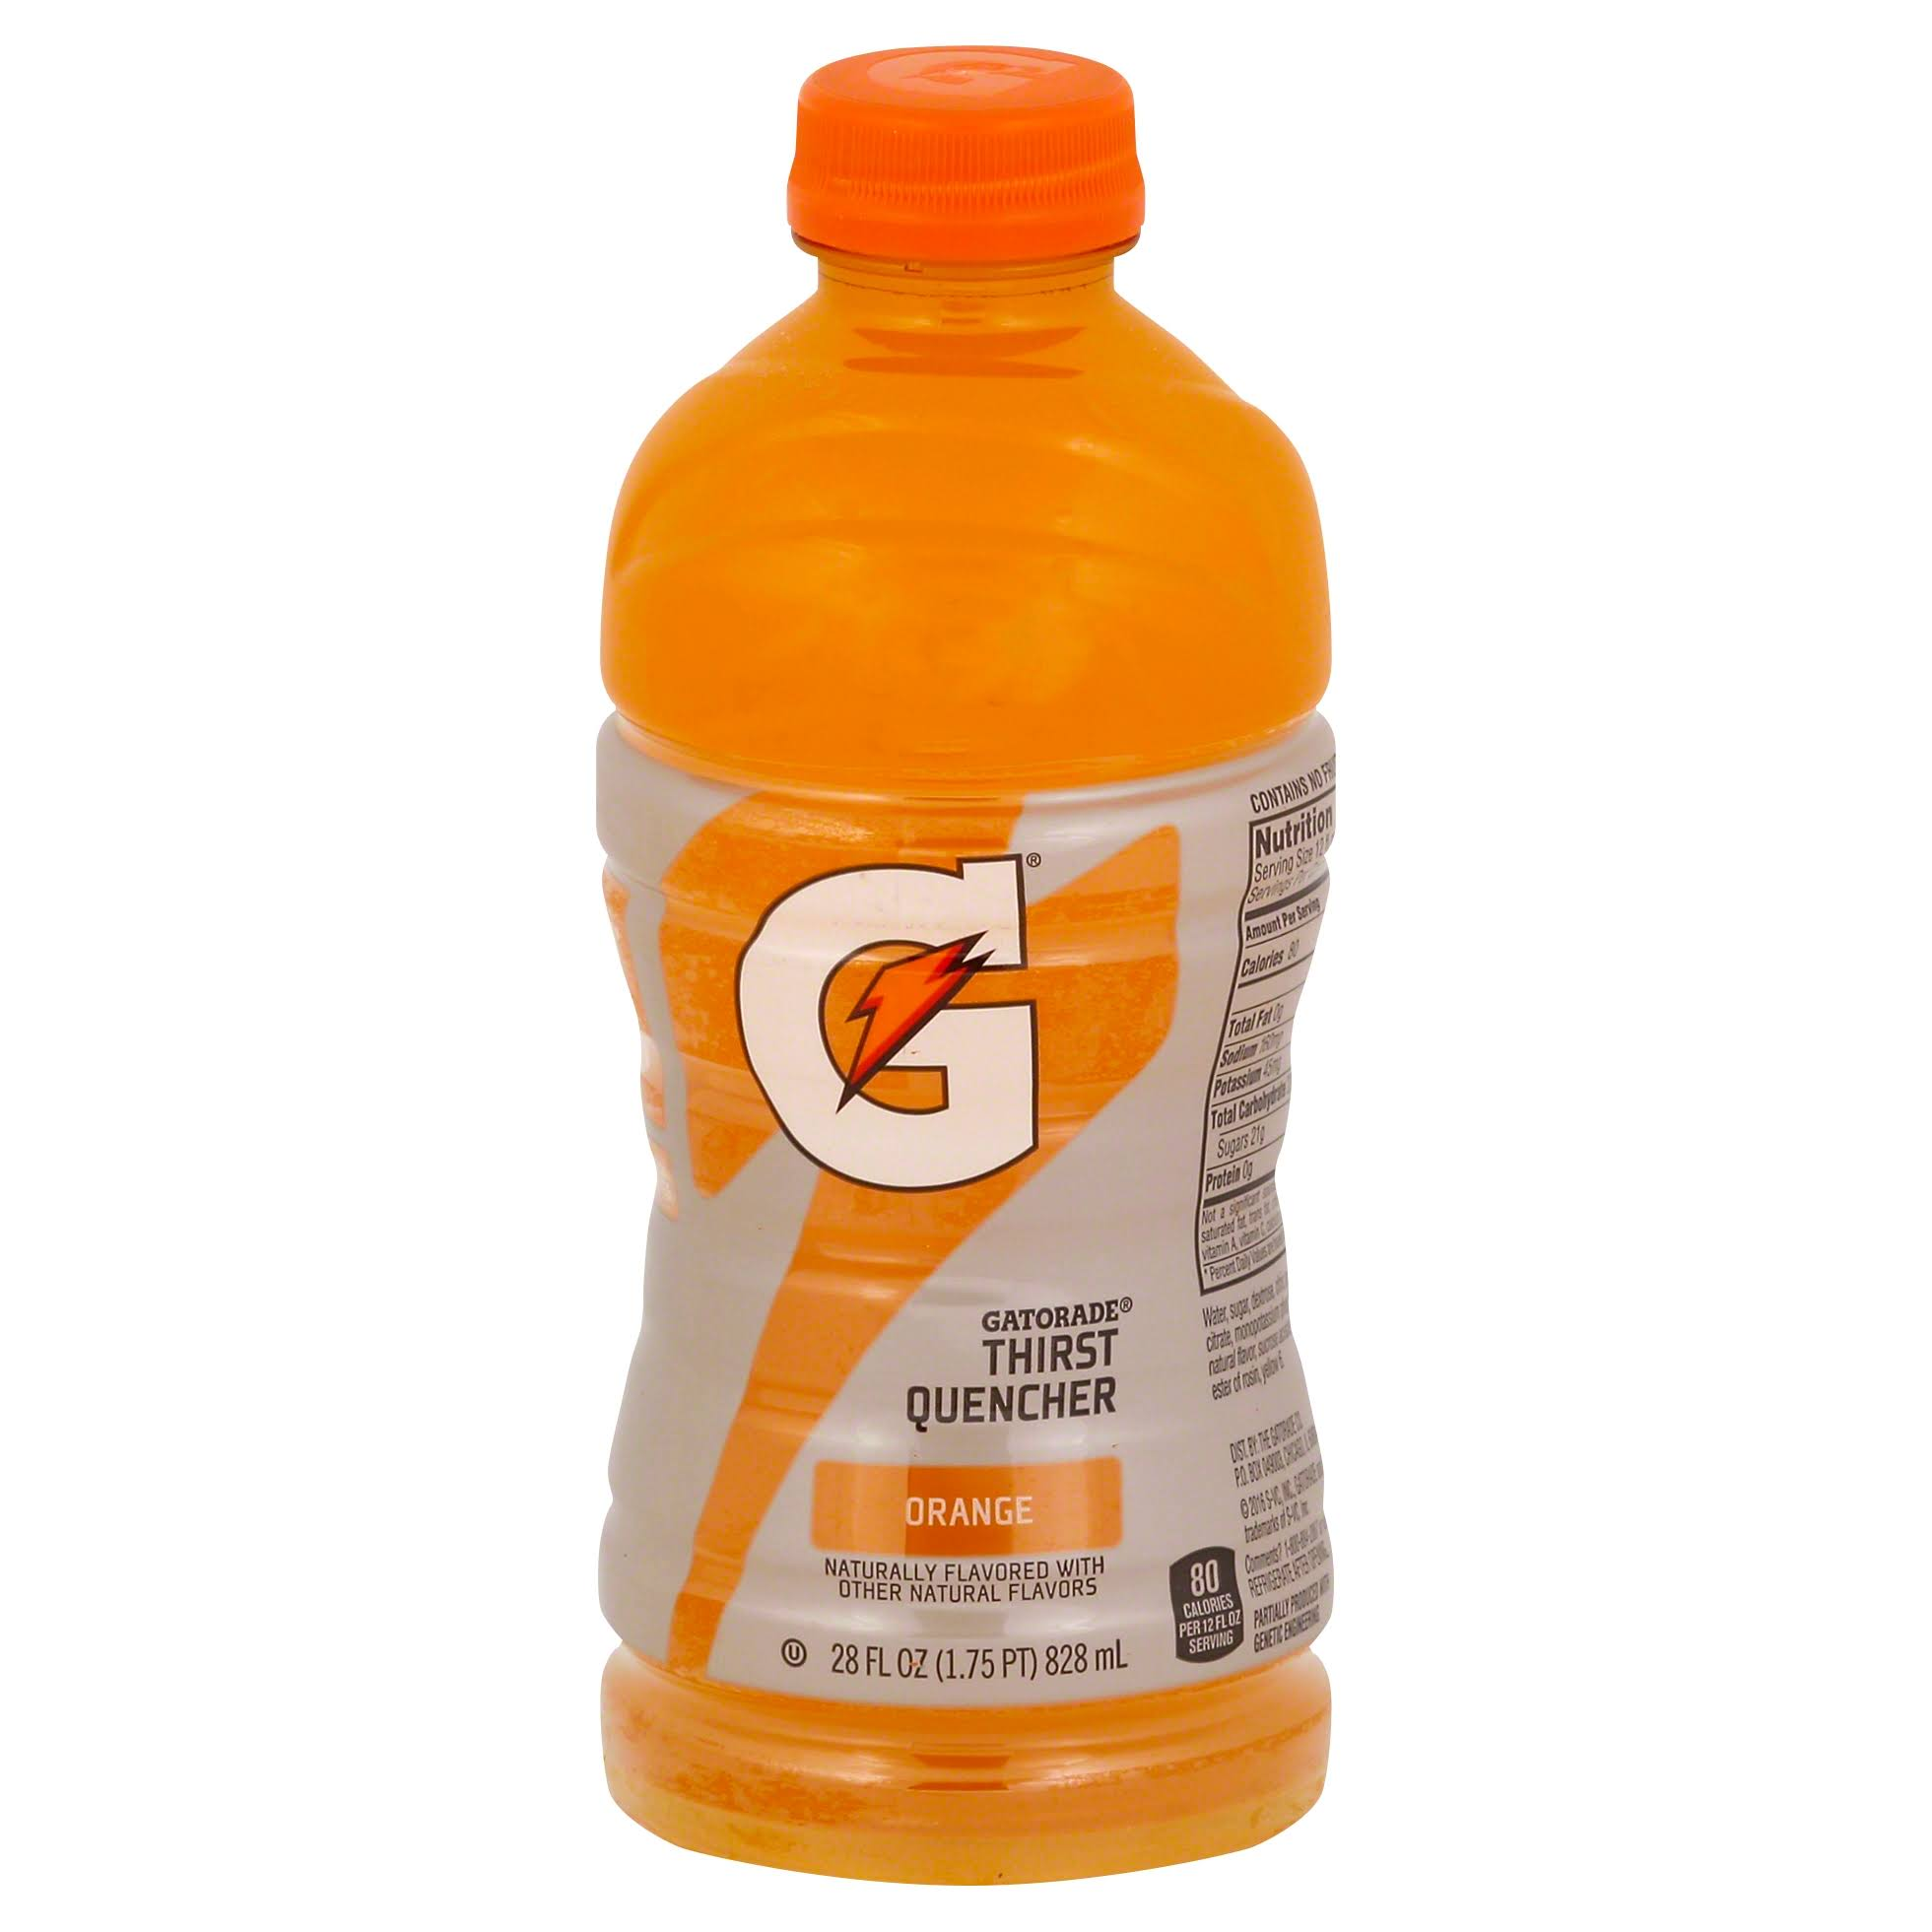 Gatorade Orange Thirst Quencher 28 Fld Oz Bottle